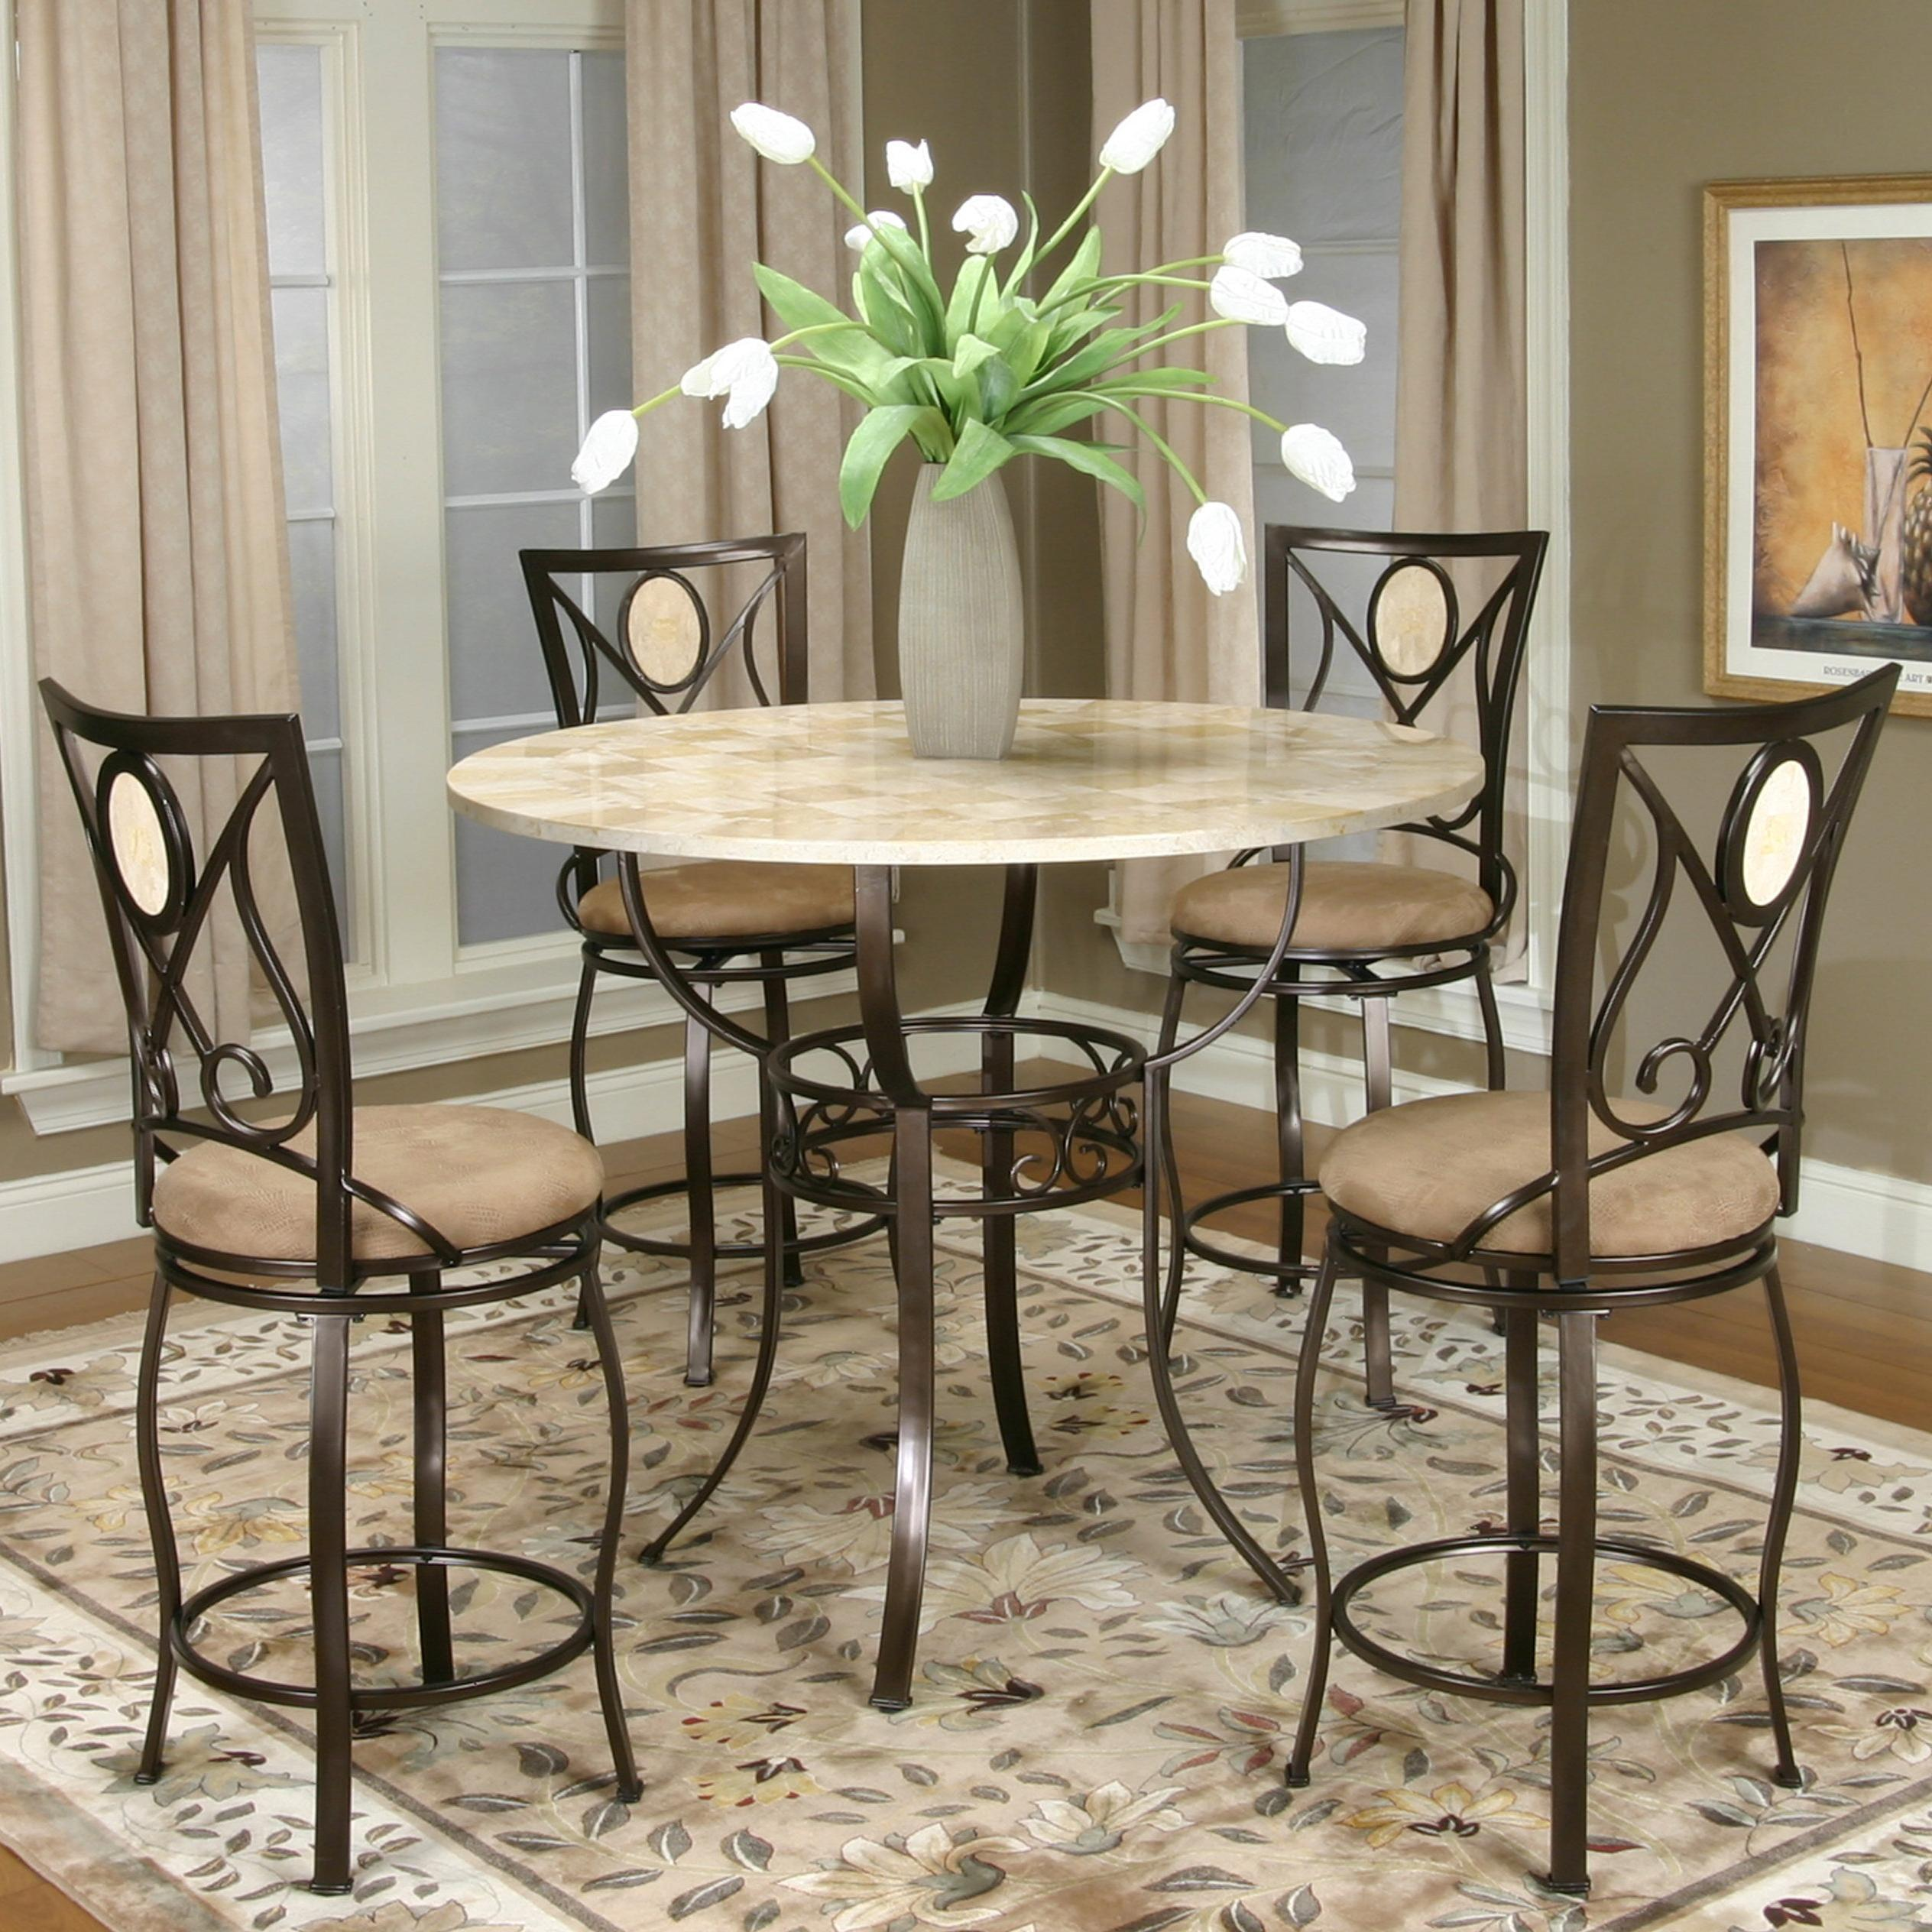 Counter Height Round Pub Table : Bronze Counter Height Pub Table with Round Glacier Inlaid Marble Top ...